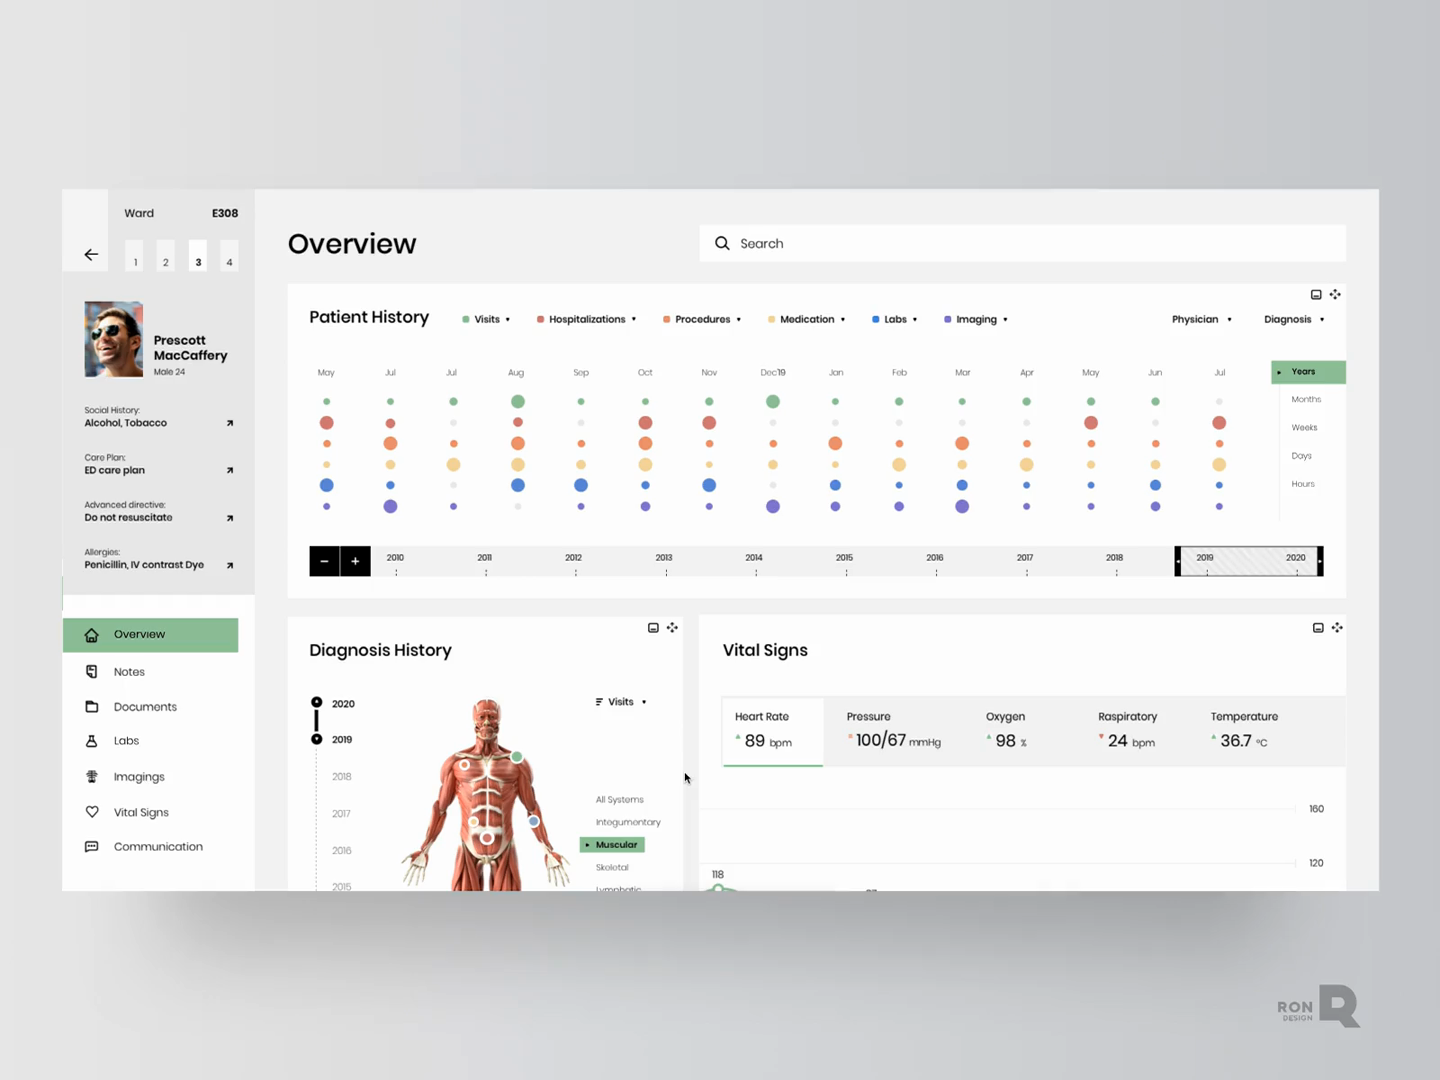 EHR - Electronic Health Record System Animation